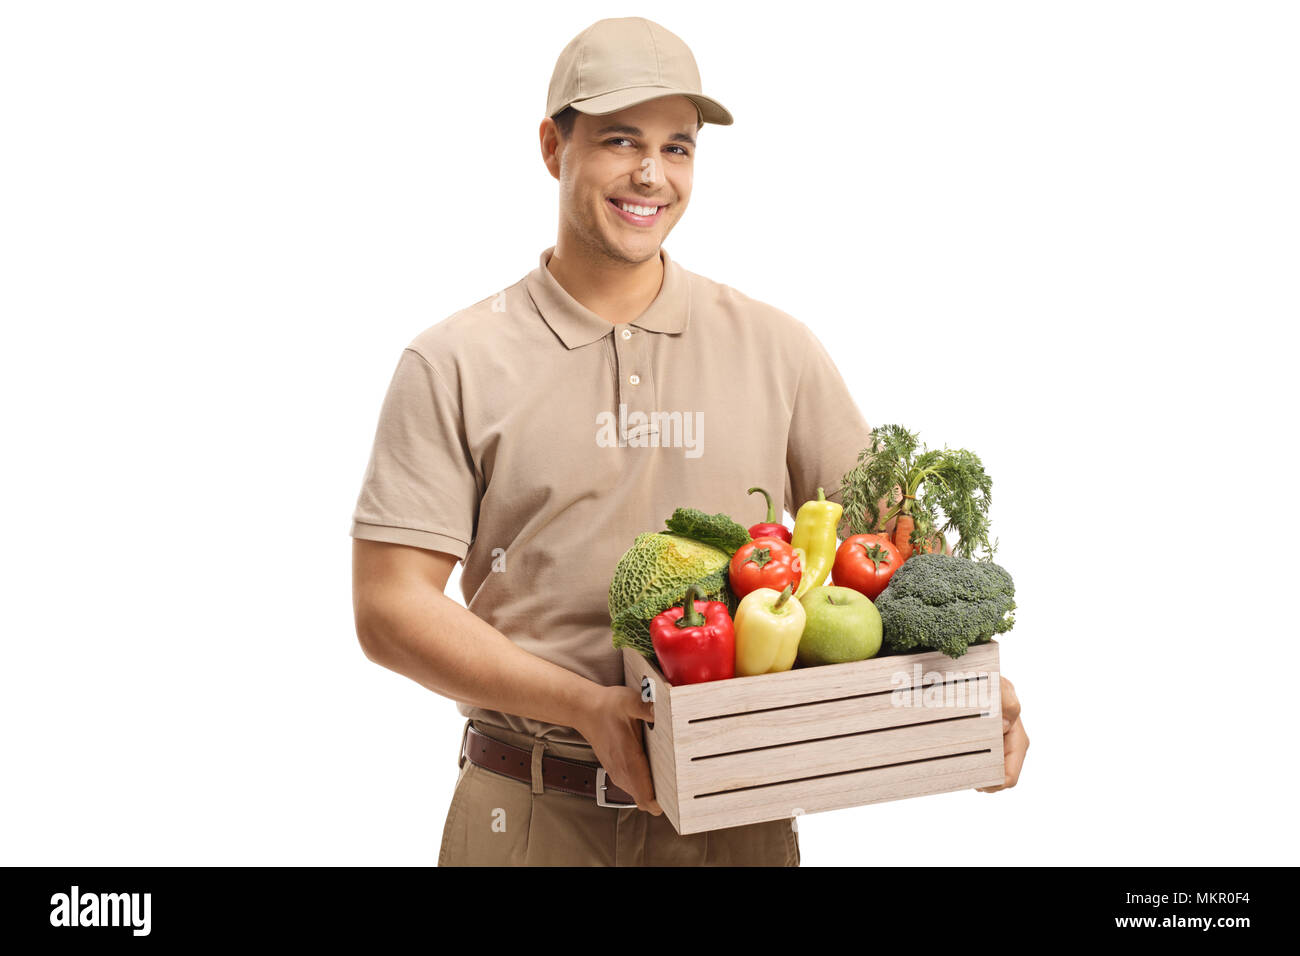 Delivery man holding a crate filled with groceries isolated on white background - Stock Image